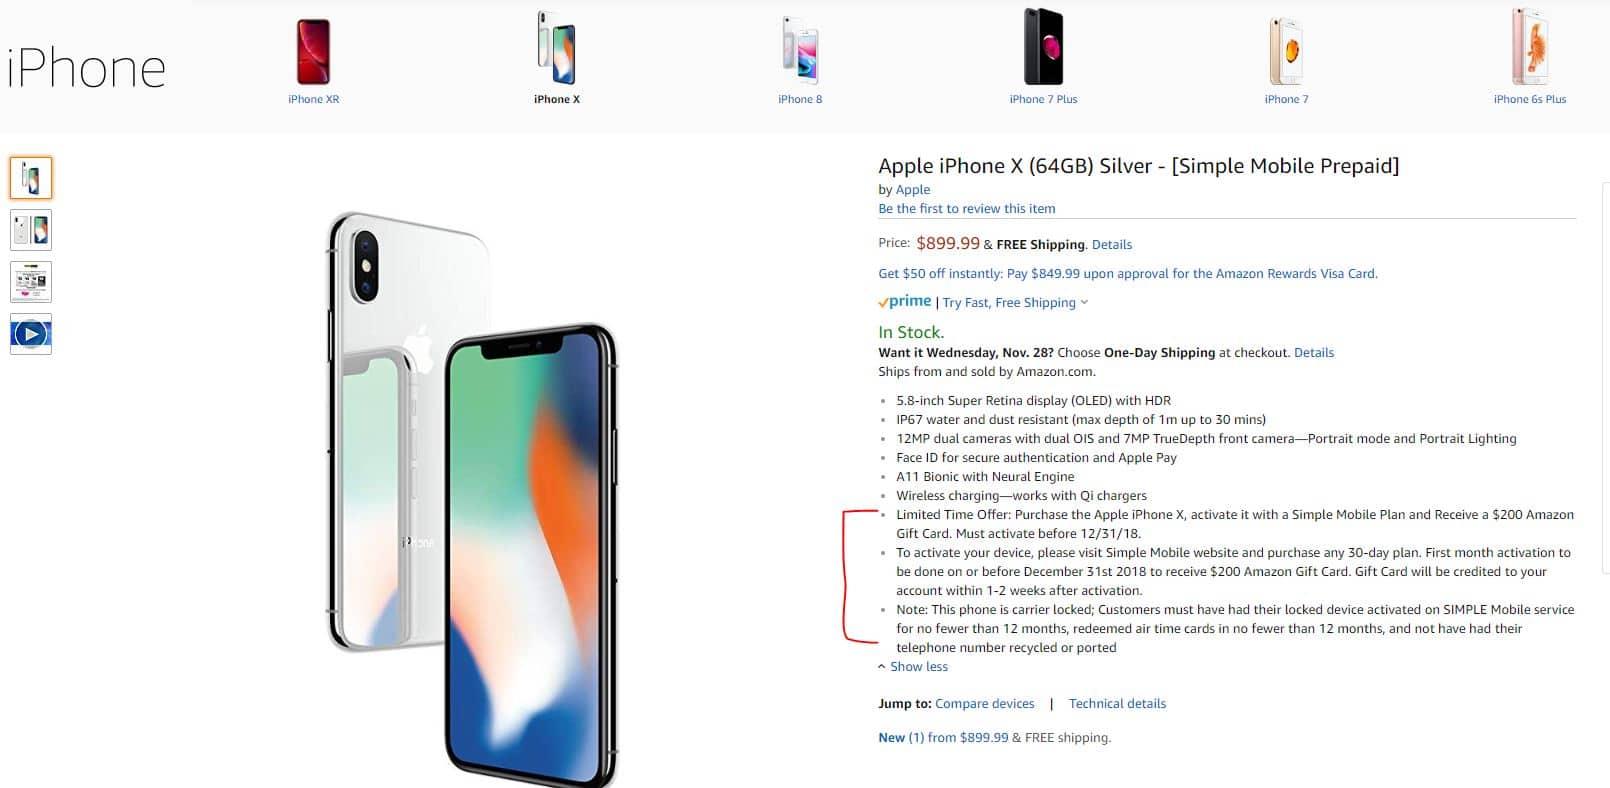 Simple Mobile iPhone X - $899 99 Sale Price and Get $200